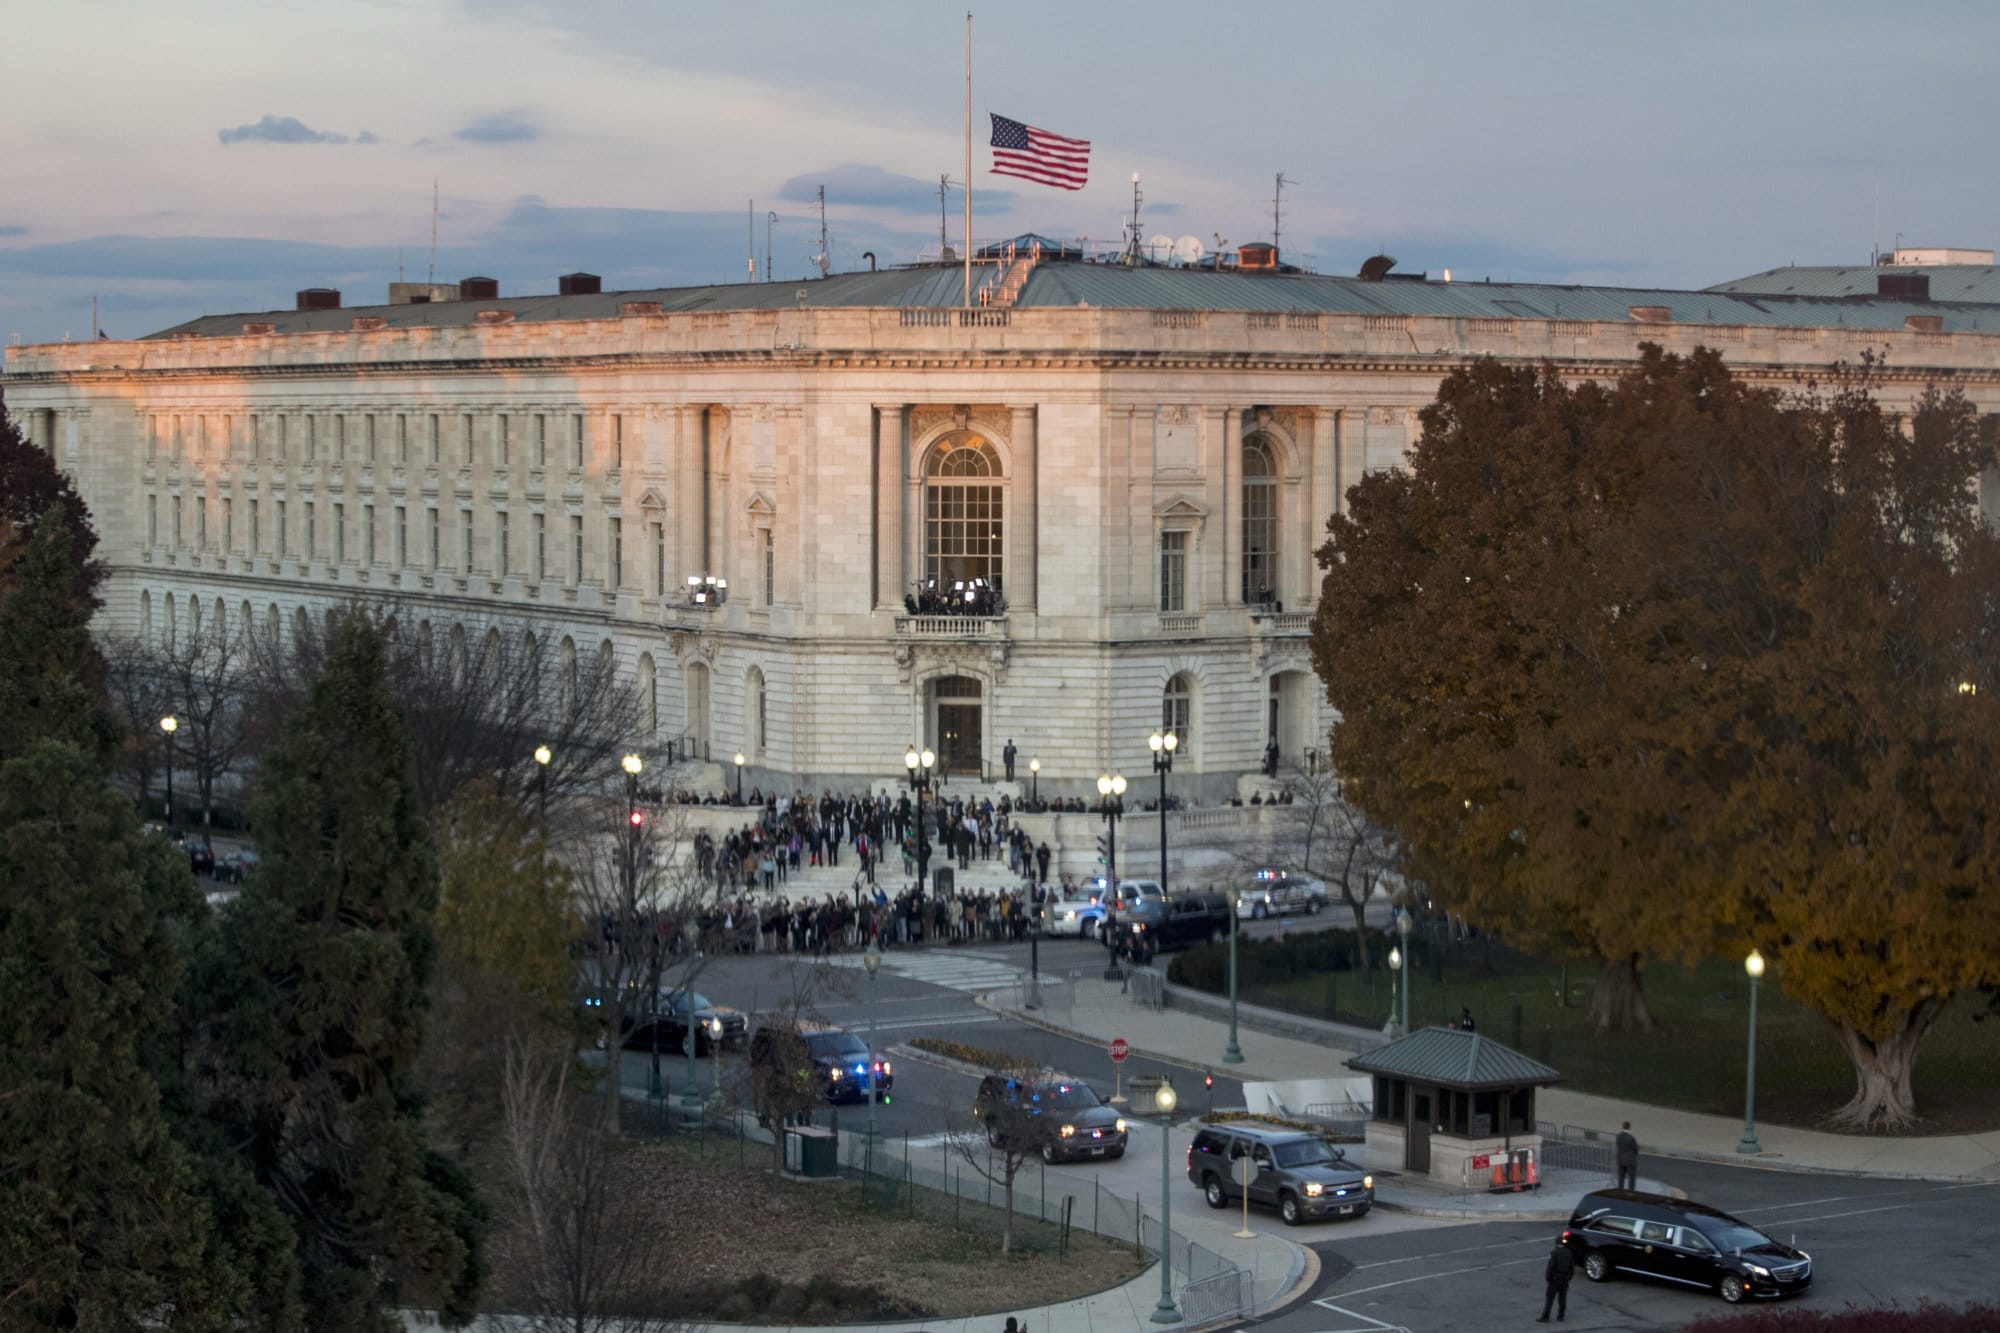 The hearse carrying the casket of former President George H.W. Bush, bottom right, arrives at the Capitol in Washington, Monday, Dec. 3, 2018. (AP Photo/Andrew Harnik)